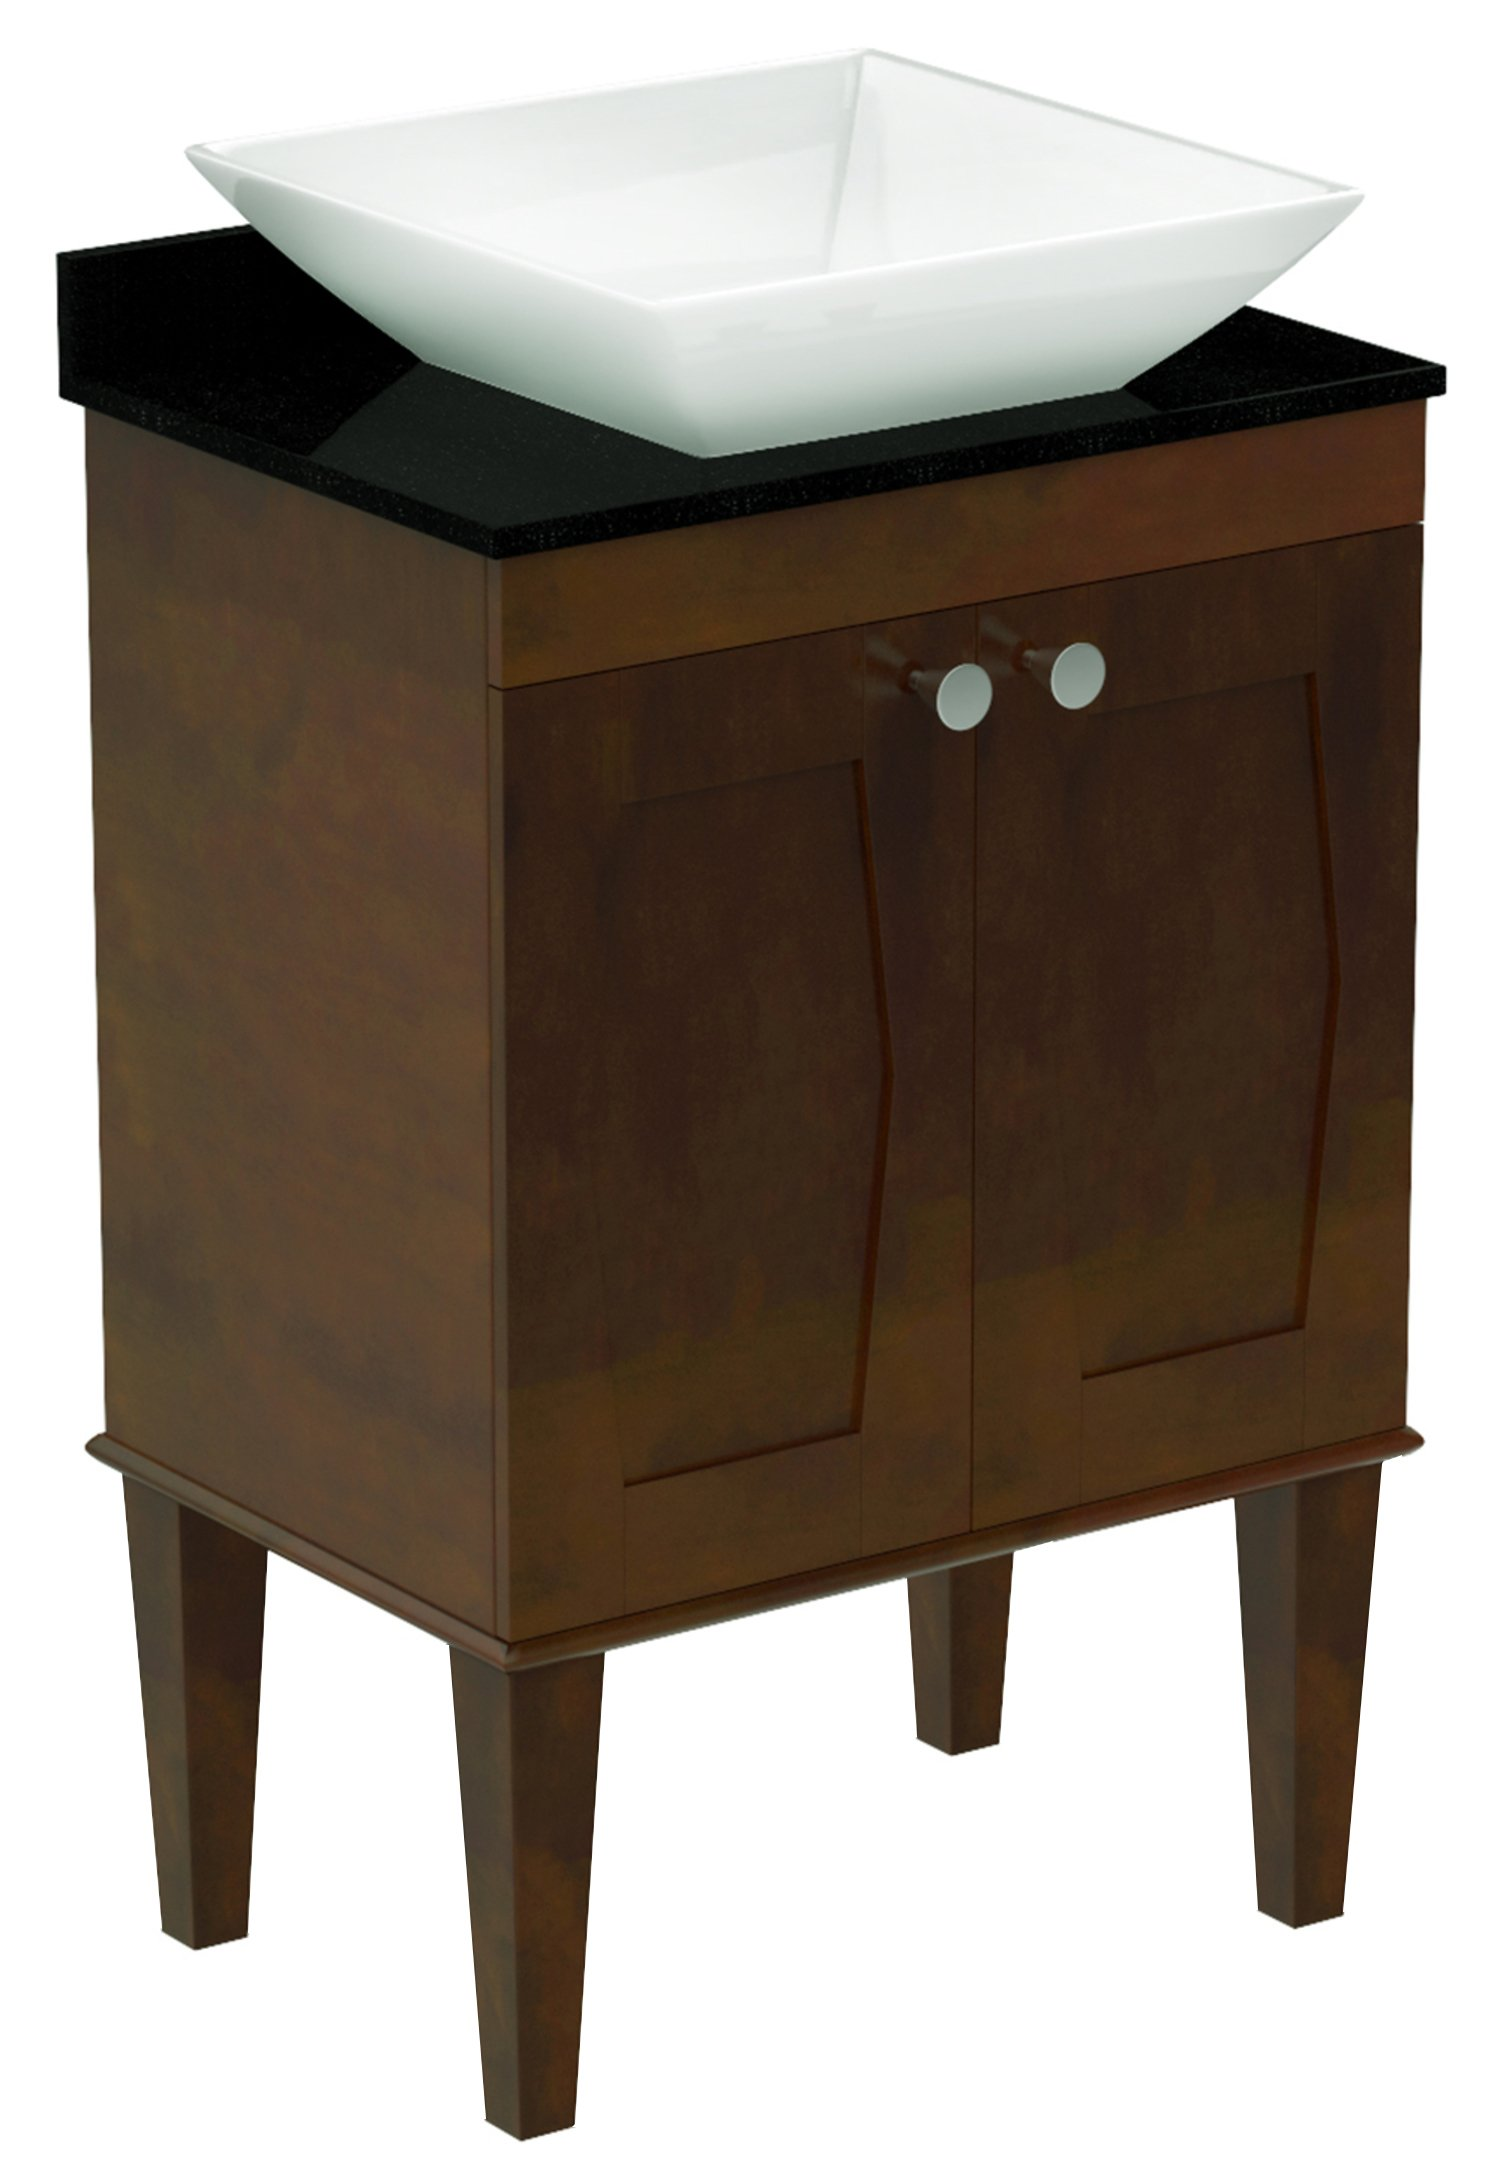 American Imaginations 721   24-Inch W X 18-Inch D Solid Wood Vanity with Soft-Close Doors and Quartz Top with Square Vessel